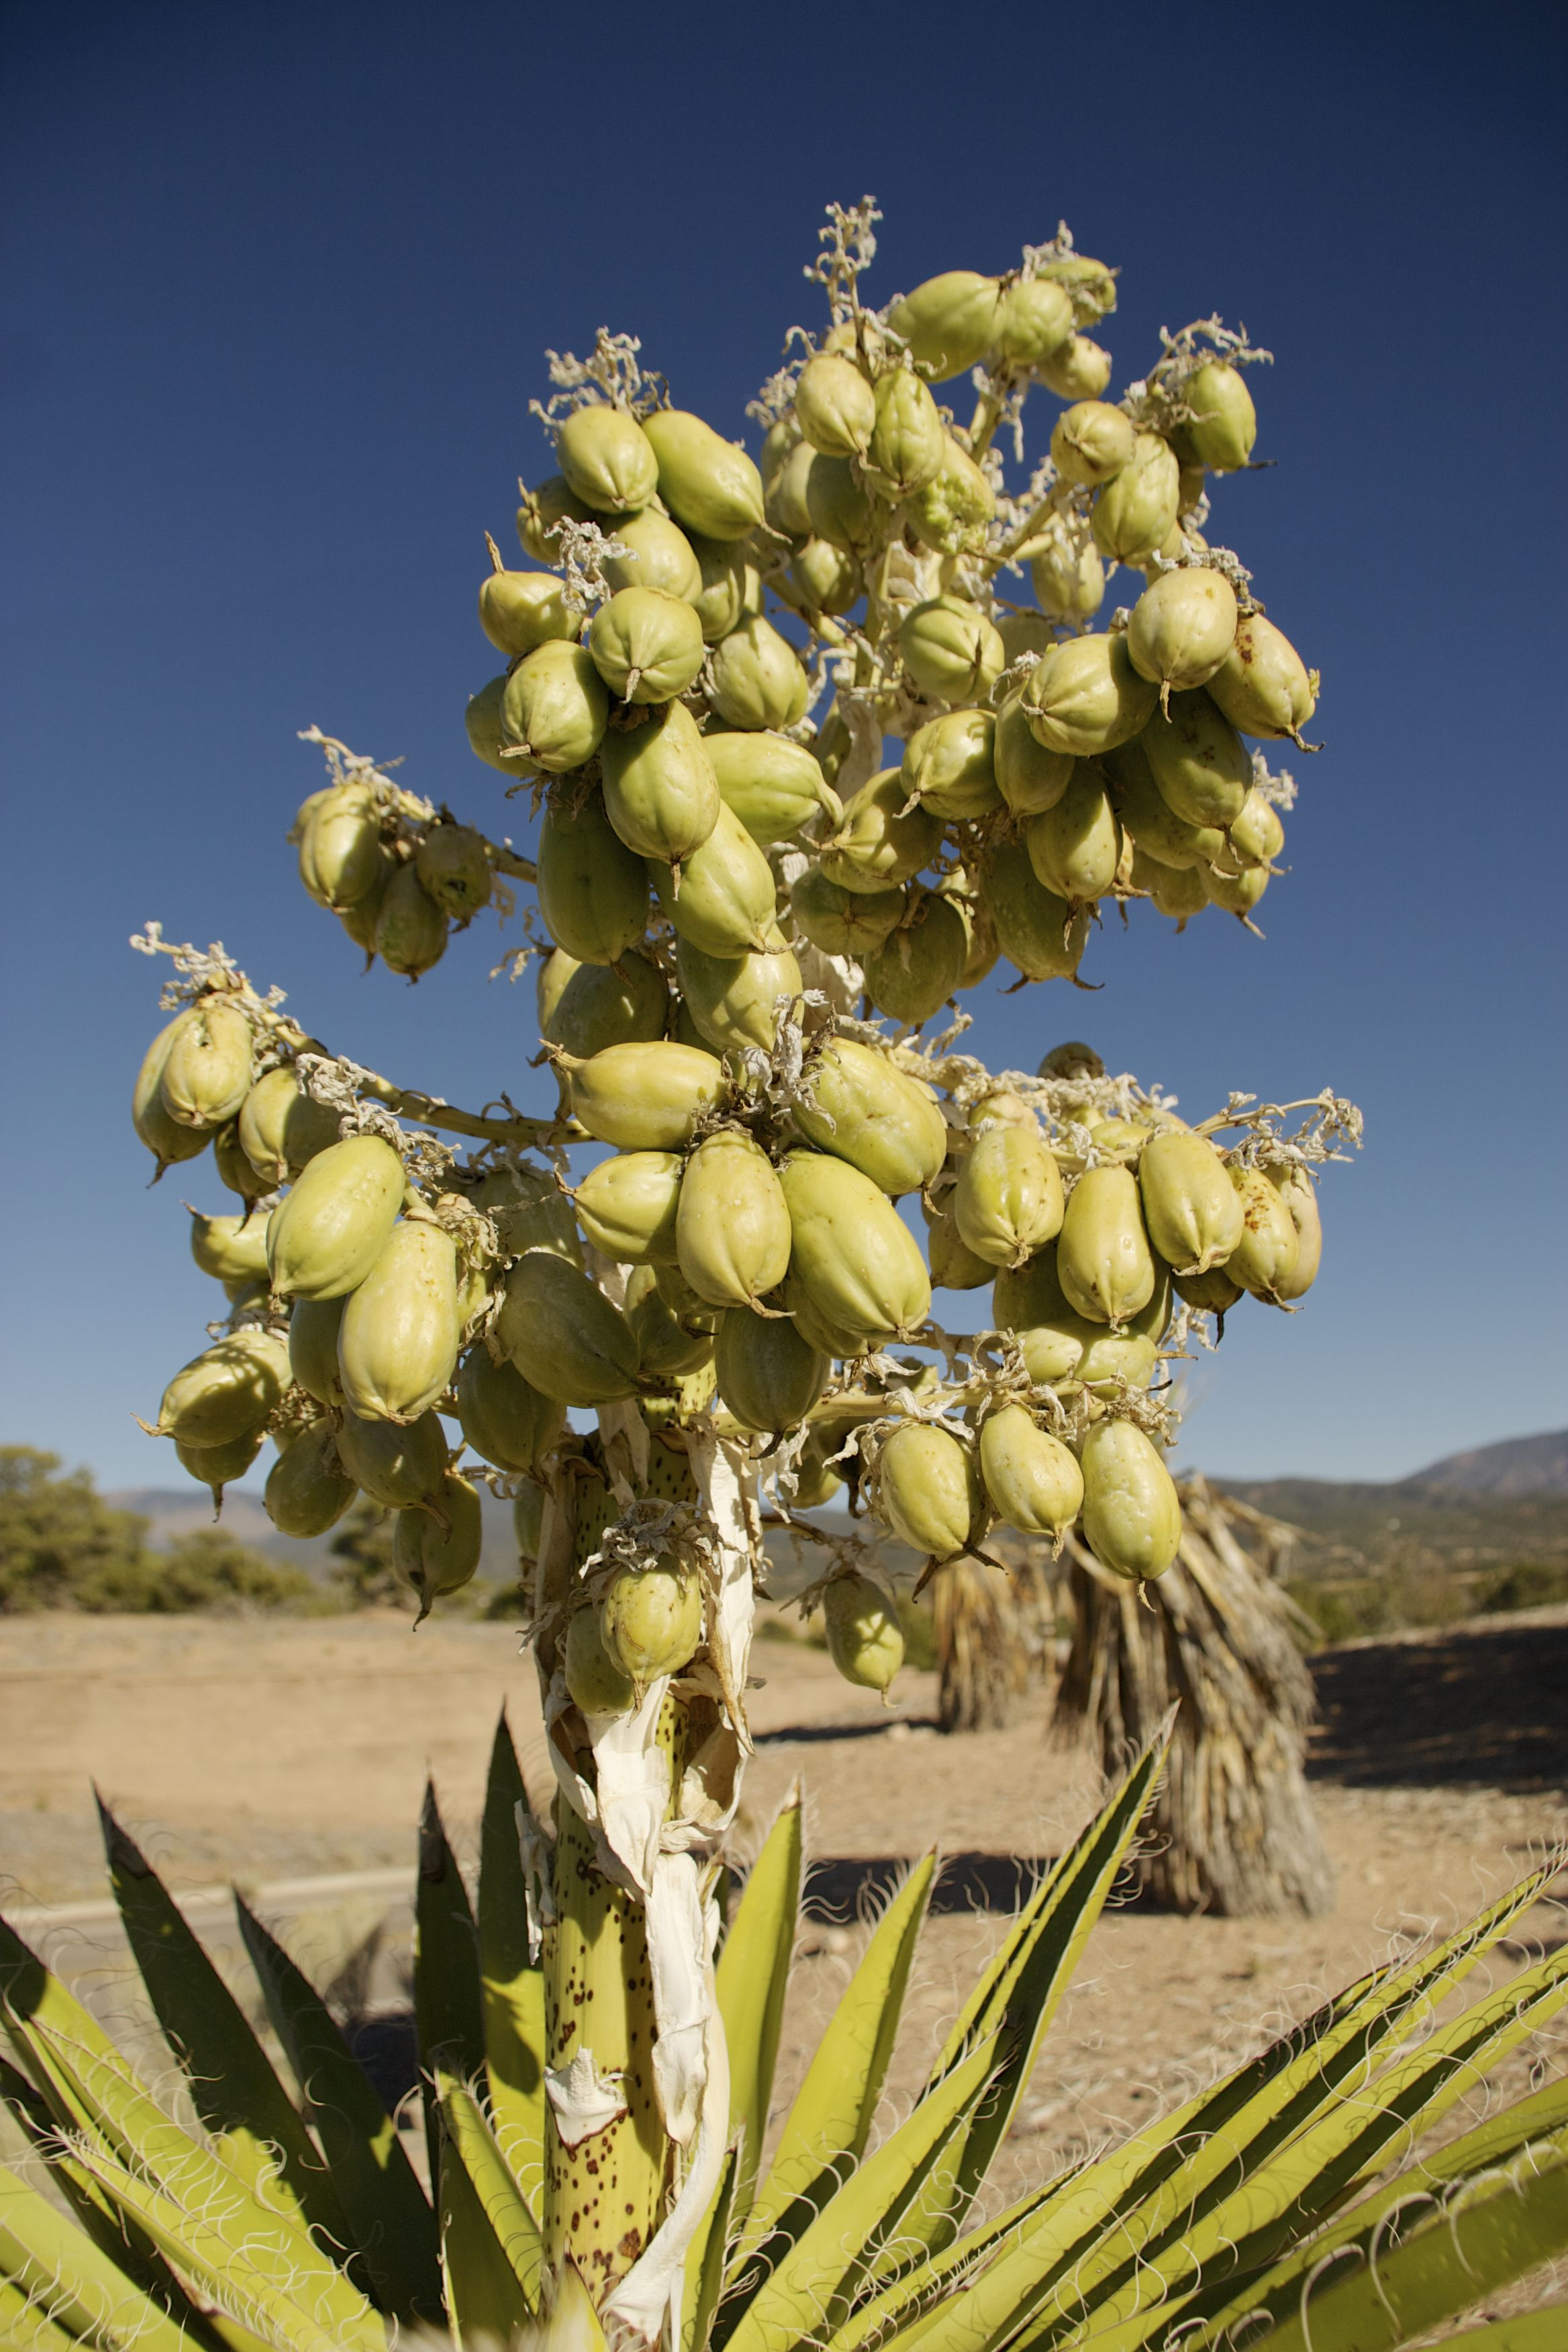 The Edible Fruit of Banana Yucca aka Yucca baccata